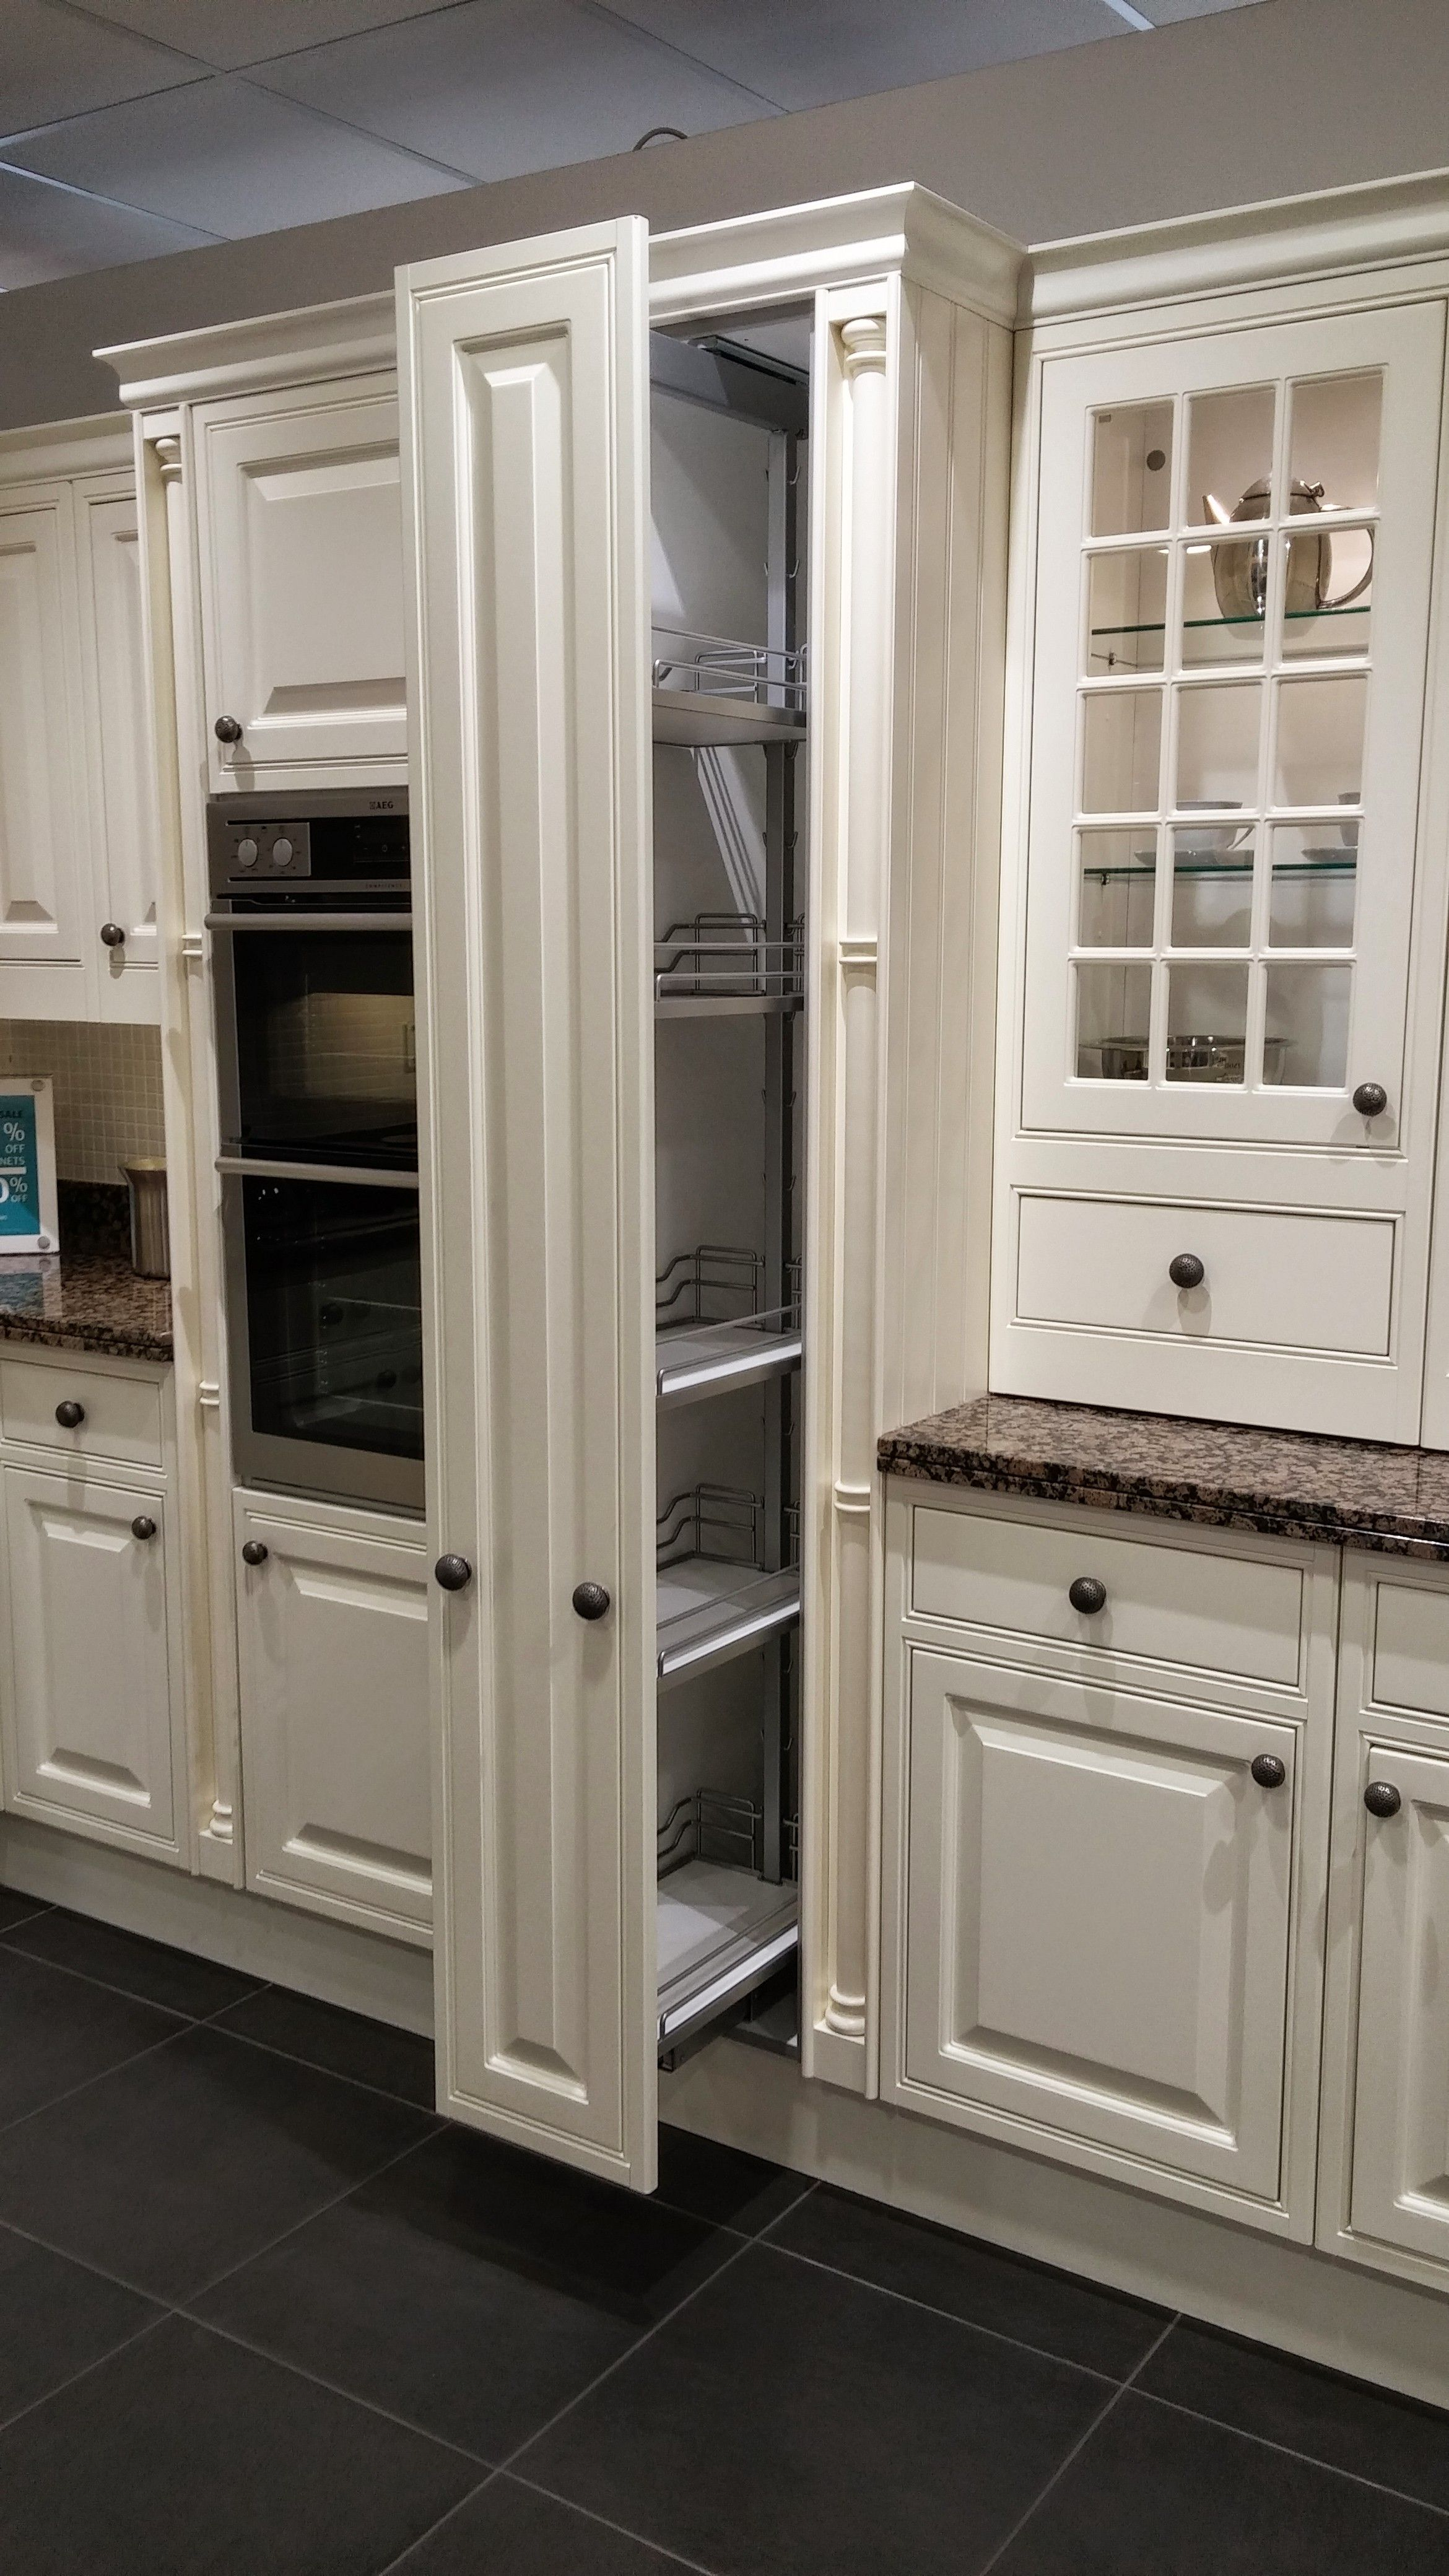 Kitchen Cabinet Magnets Narrow Pull Out Larder Tall Thin Pullout Rack Cupboard In